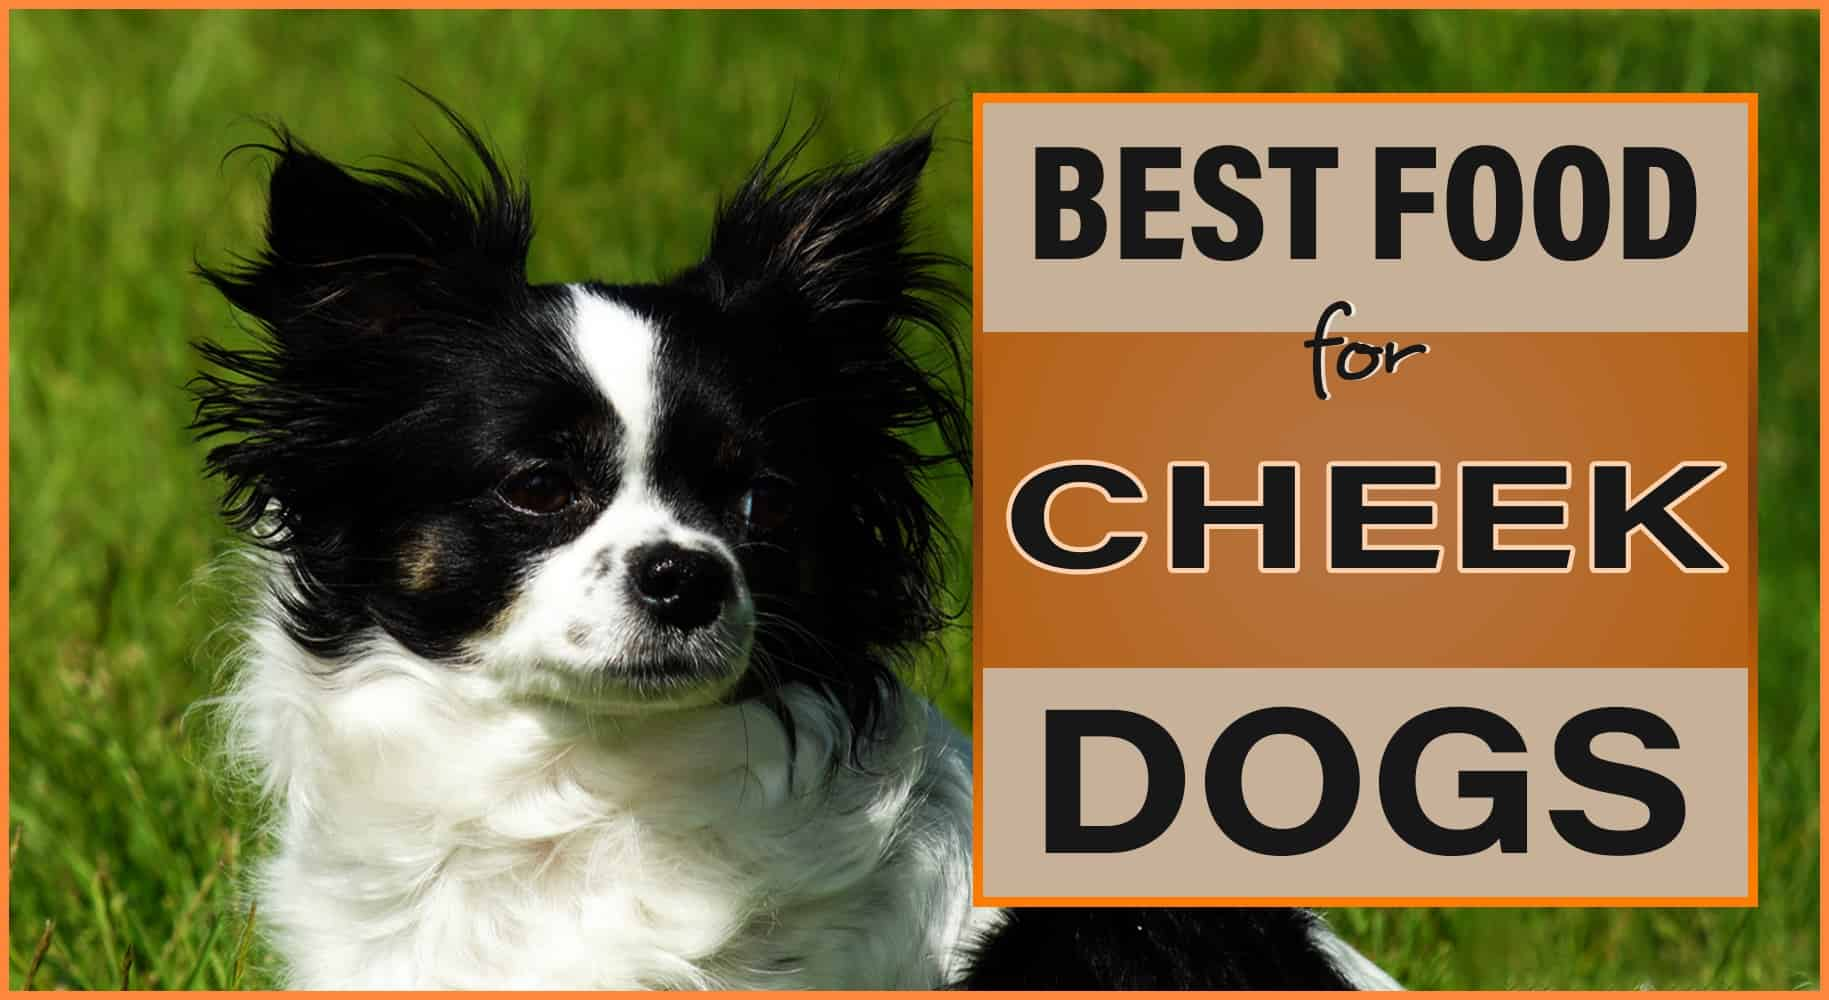 best dog food for cheek